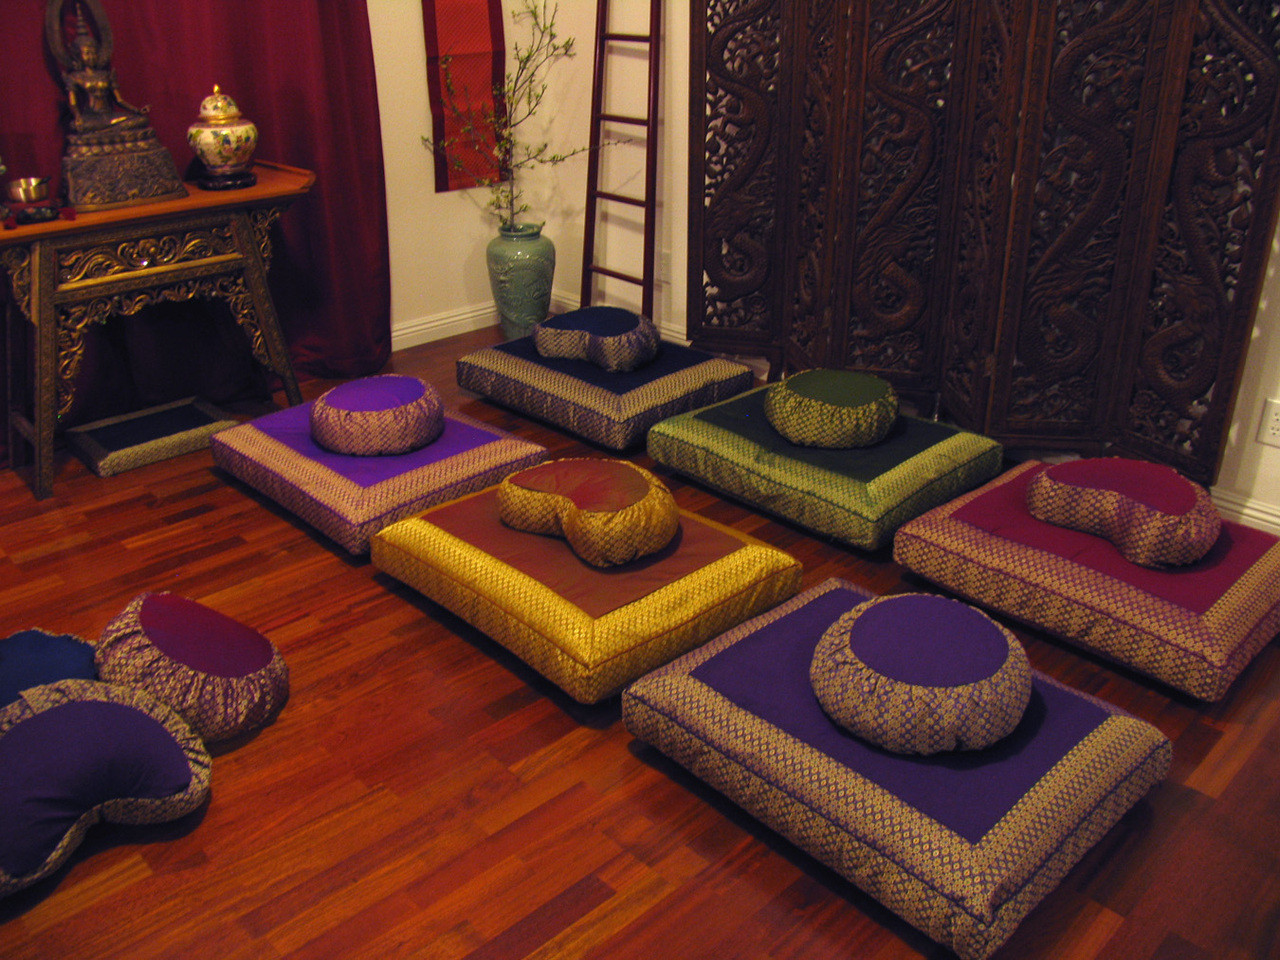 The Small Meditation Room Can Accommodate About 6 10 People Far Wall Holds A Tibetan Niche And Trunk For Holding Equipment